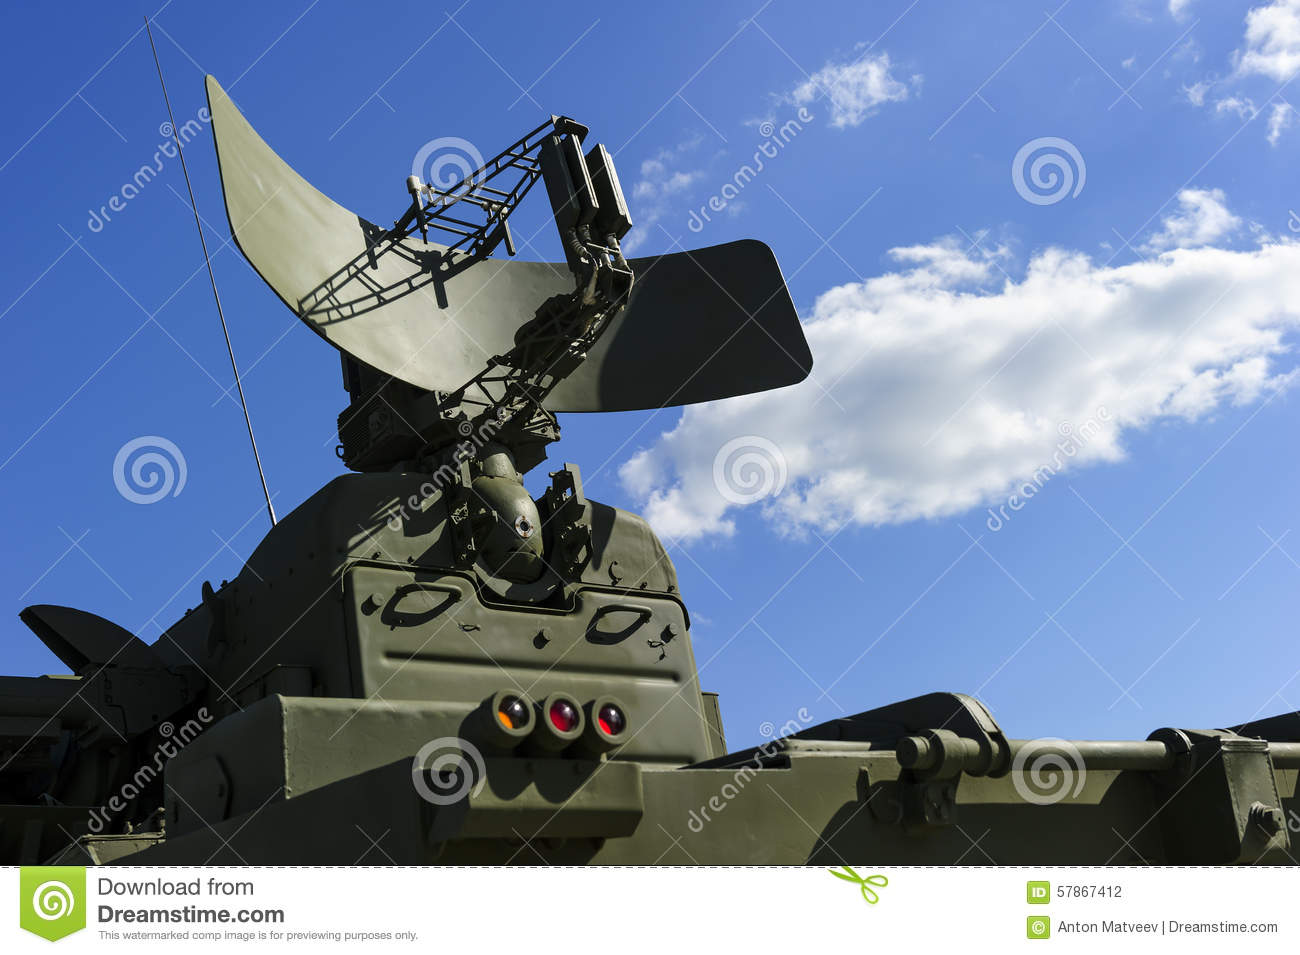 military drone camera with Stock Photo Military Radar Air Defense Mobile Mighty Rocket Launcher System Green Color Modern Army Industry White Cloud Blue Sky Image57867412 on Watch as well High School Drone Designers Head D C Weekend furthermore Dynamicco as well Hubsan H502s X4 Desire Fpv Drone Gps Rth Follow Me Headless 720p Camera besides Dji Mavic Pro Foldable Drone.